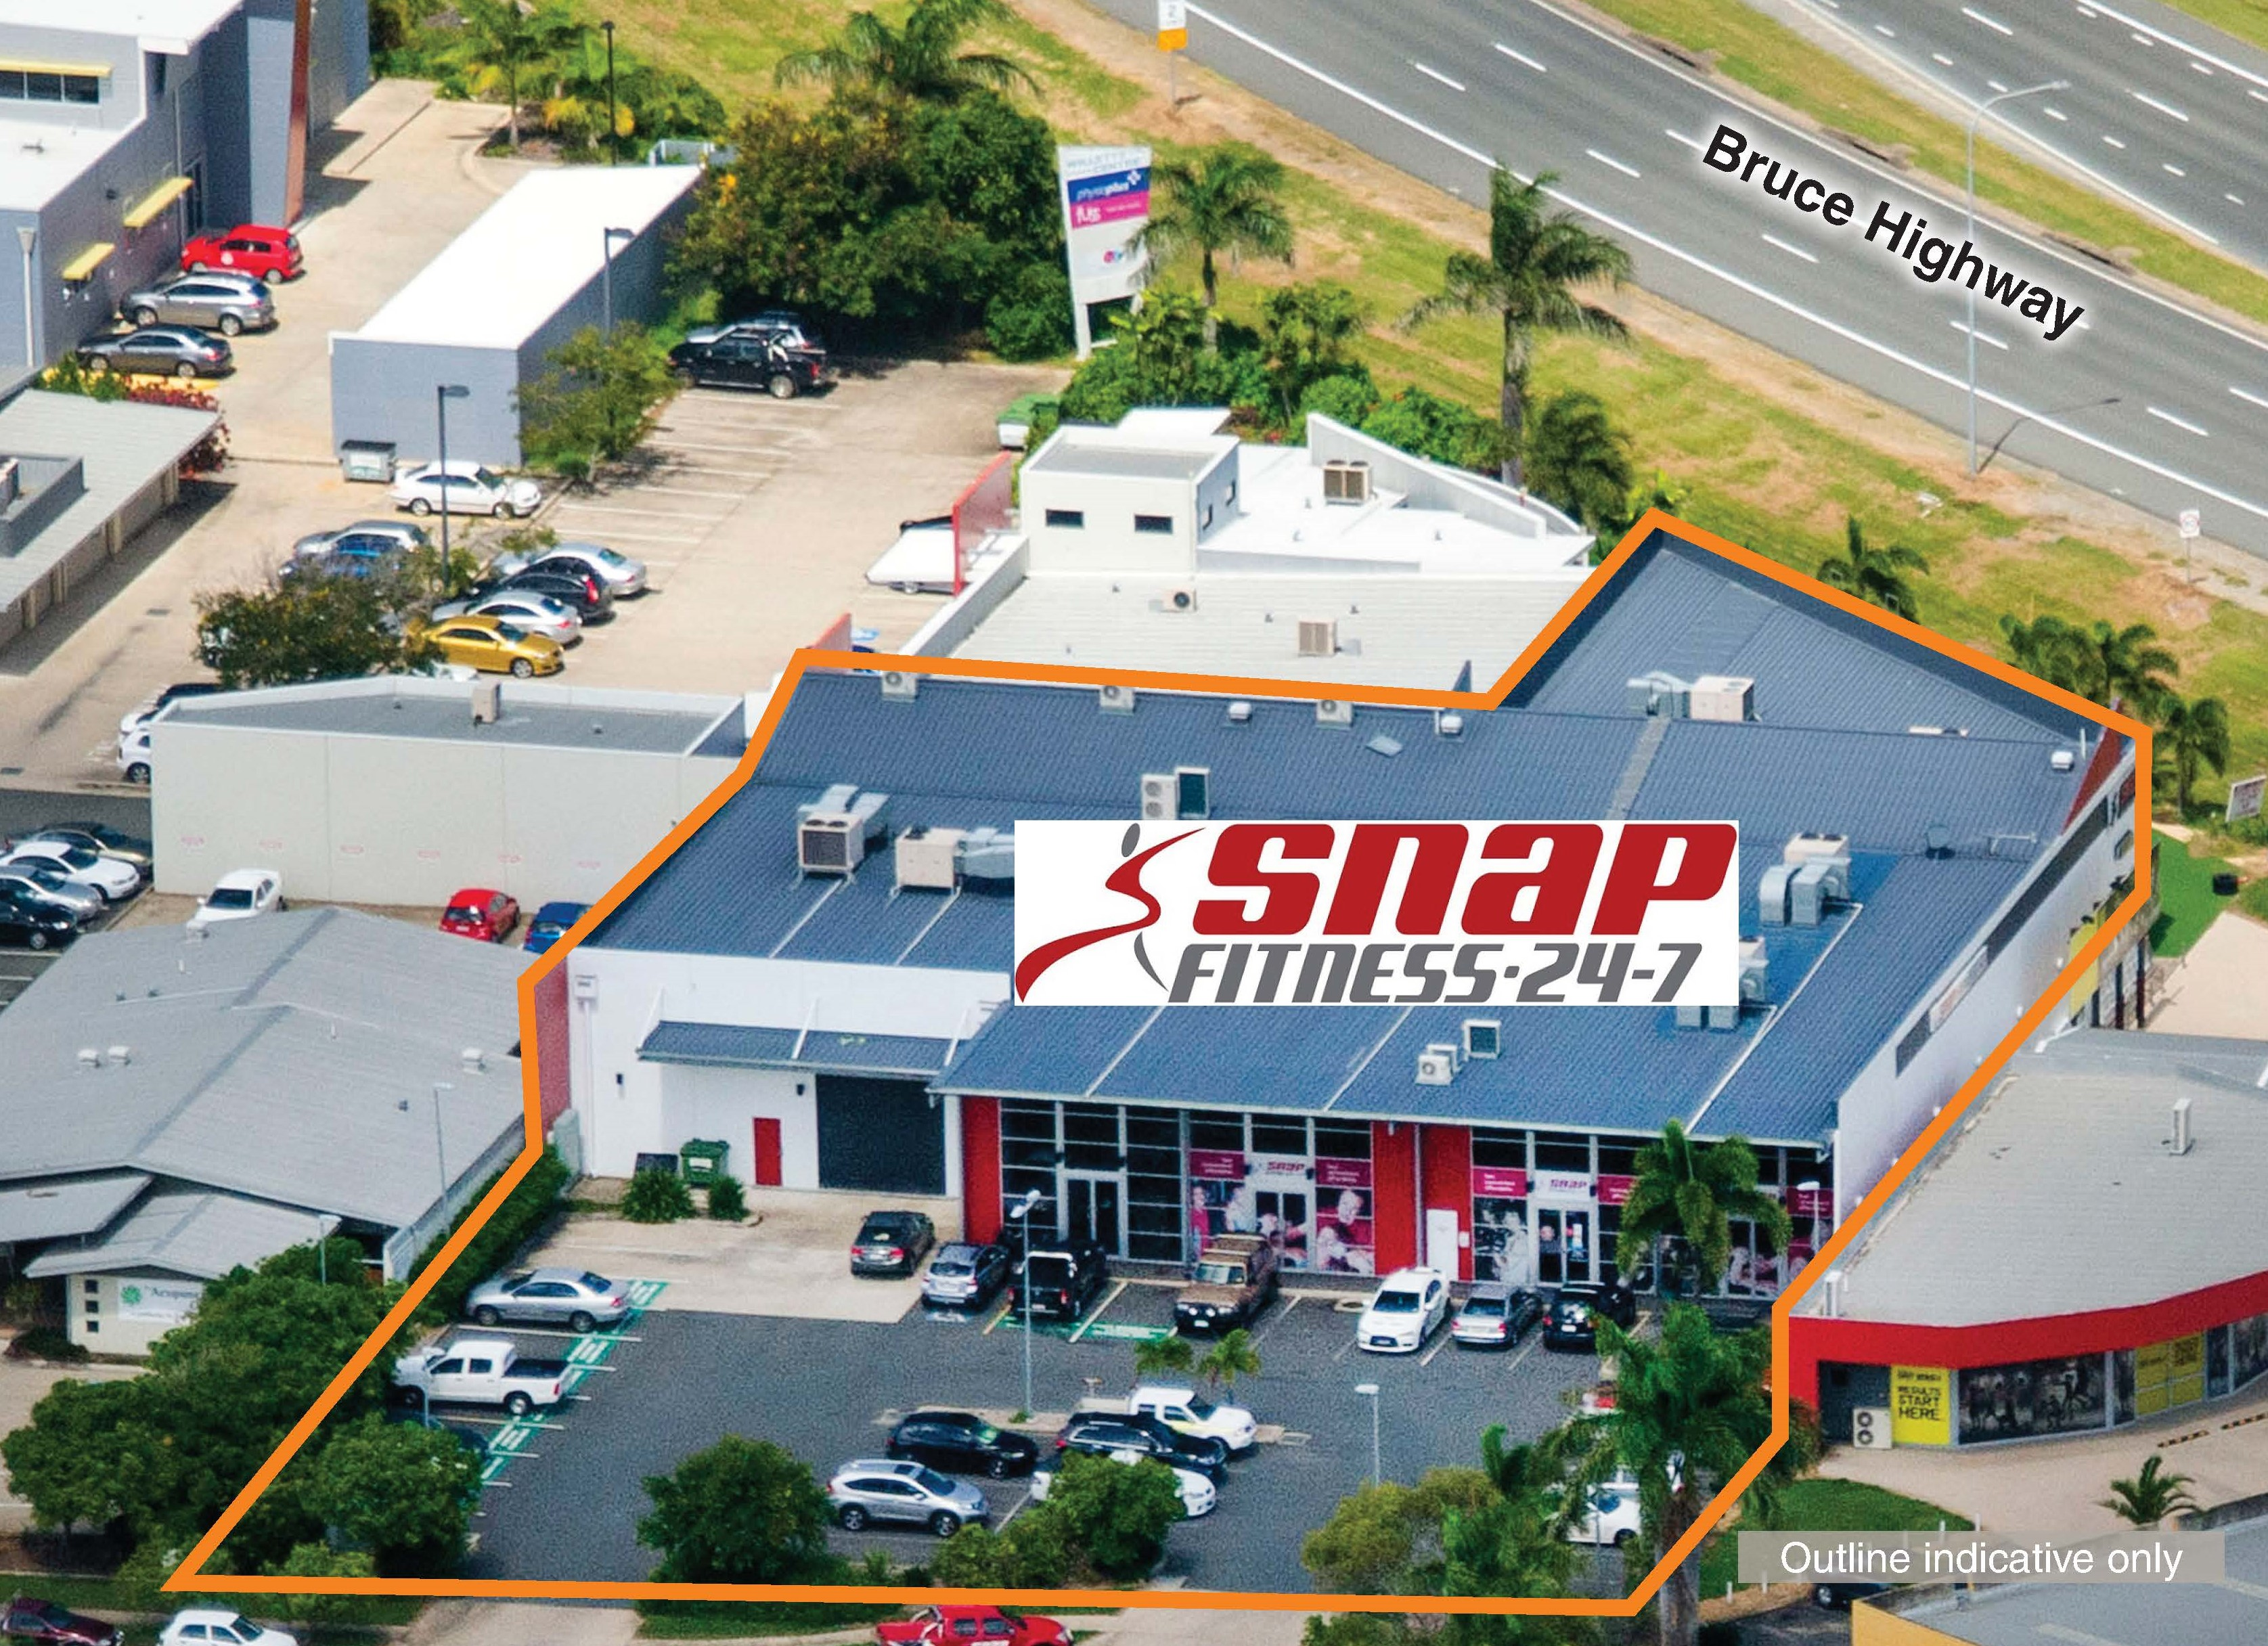 New 10 Year Lease Plus Options to 2038 High Yielding Strategic Bruce Highway Location – 9% Yield